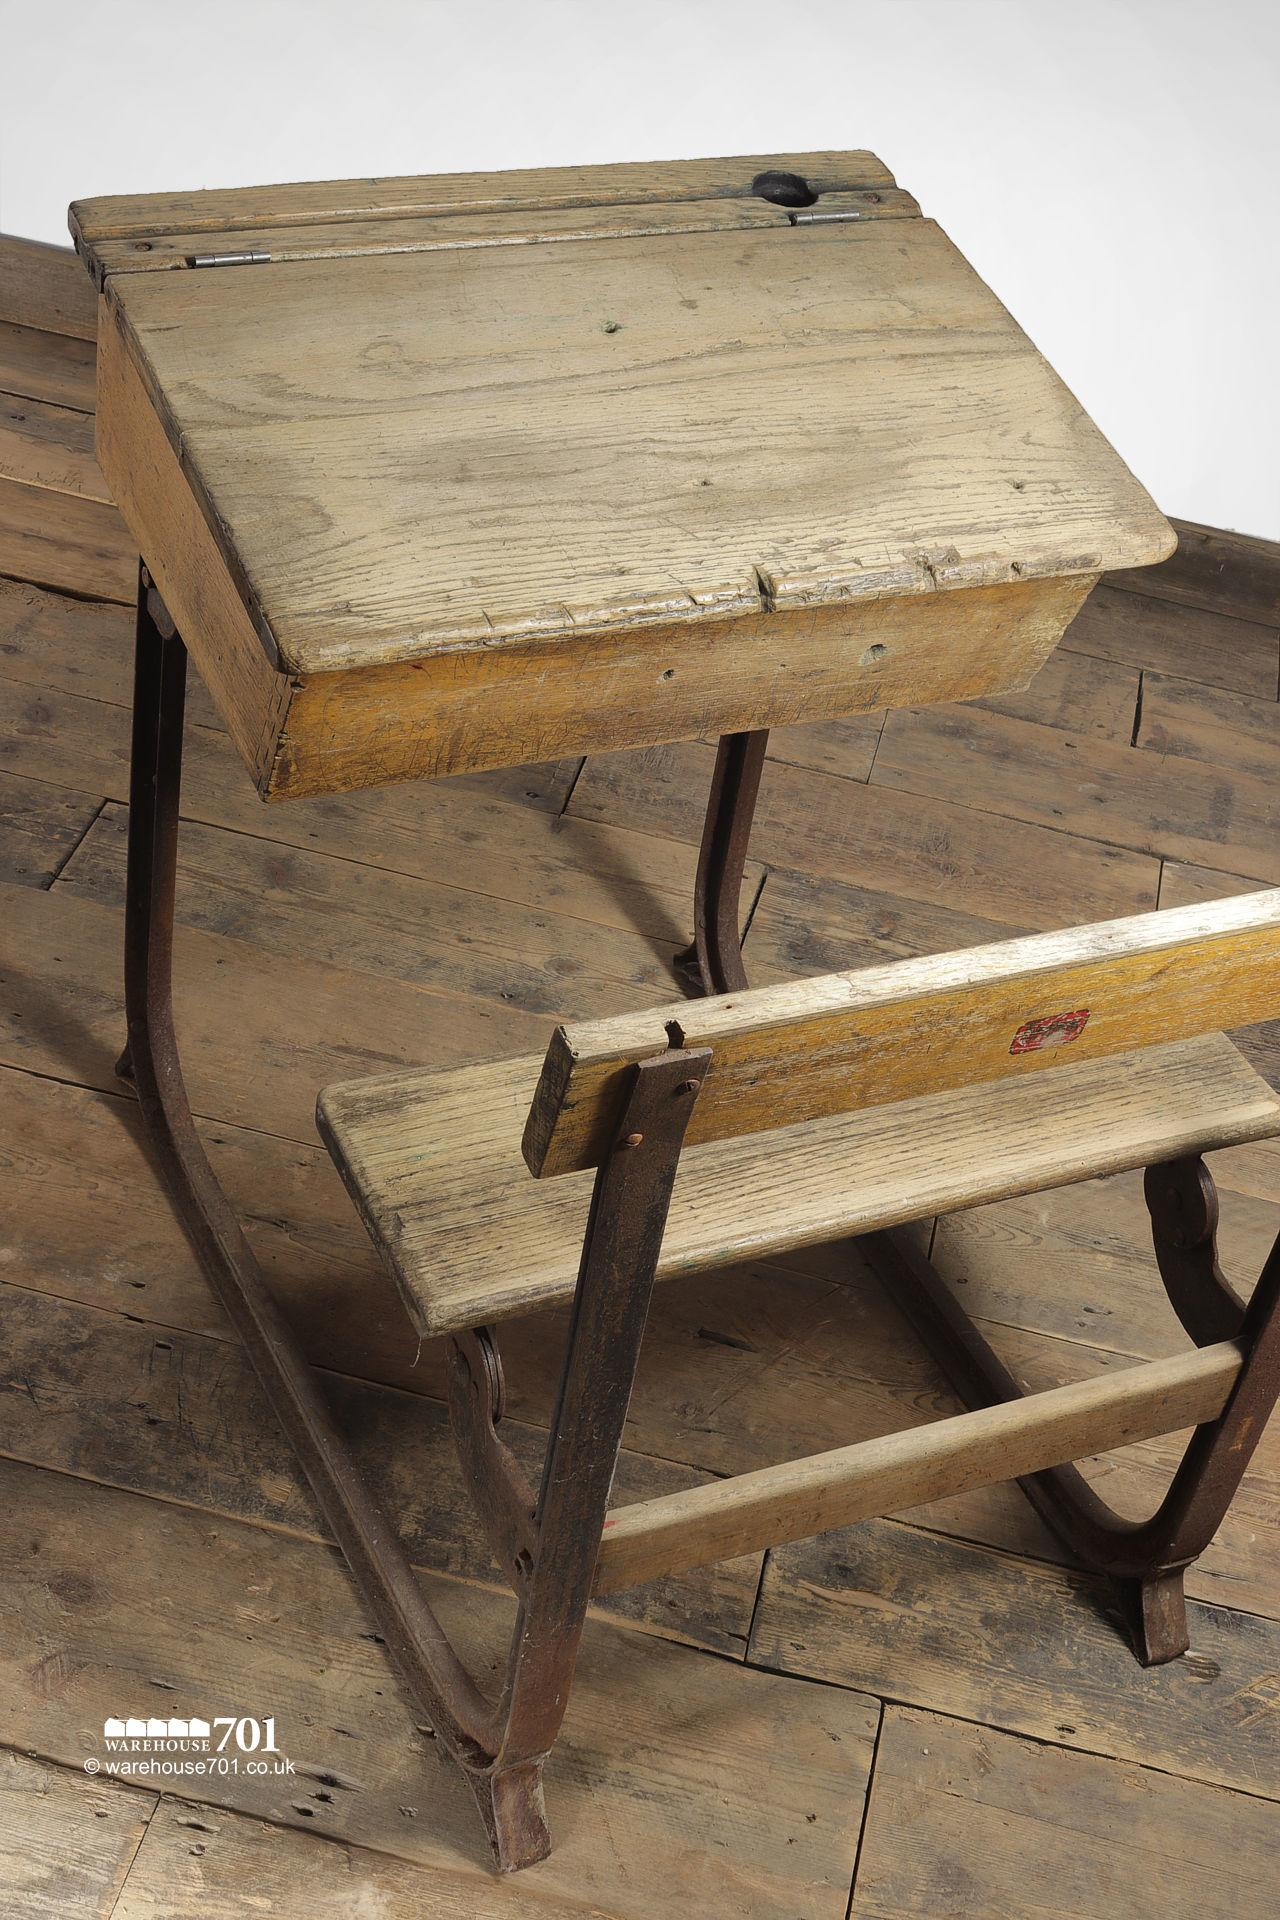 Reclaimed Wooden Childs School Desk and Seat #5